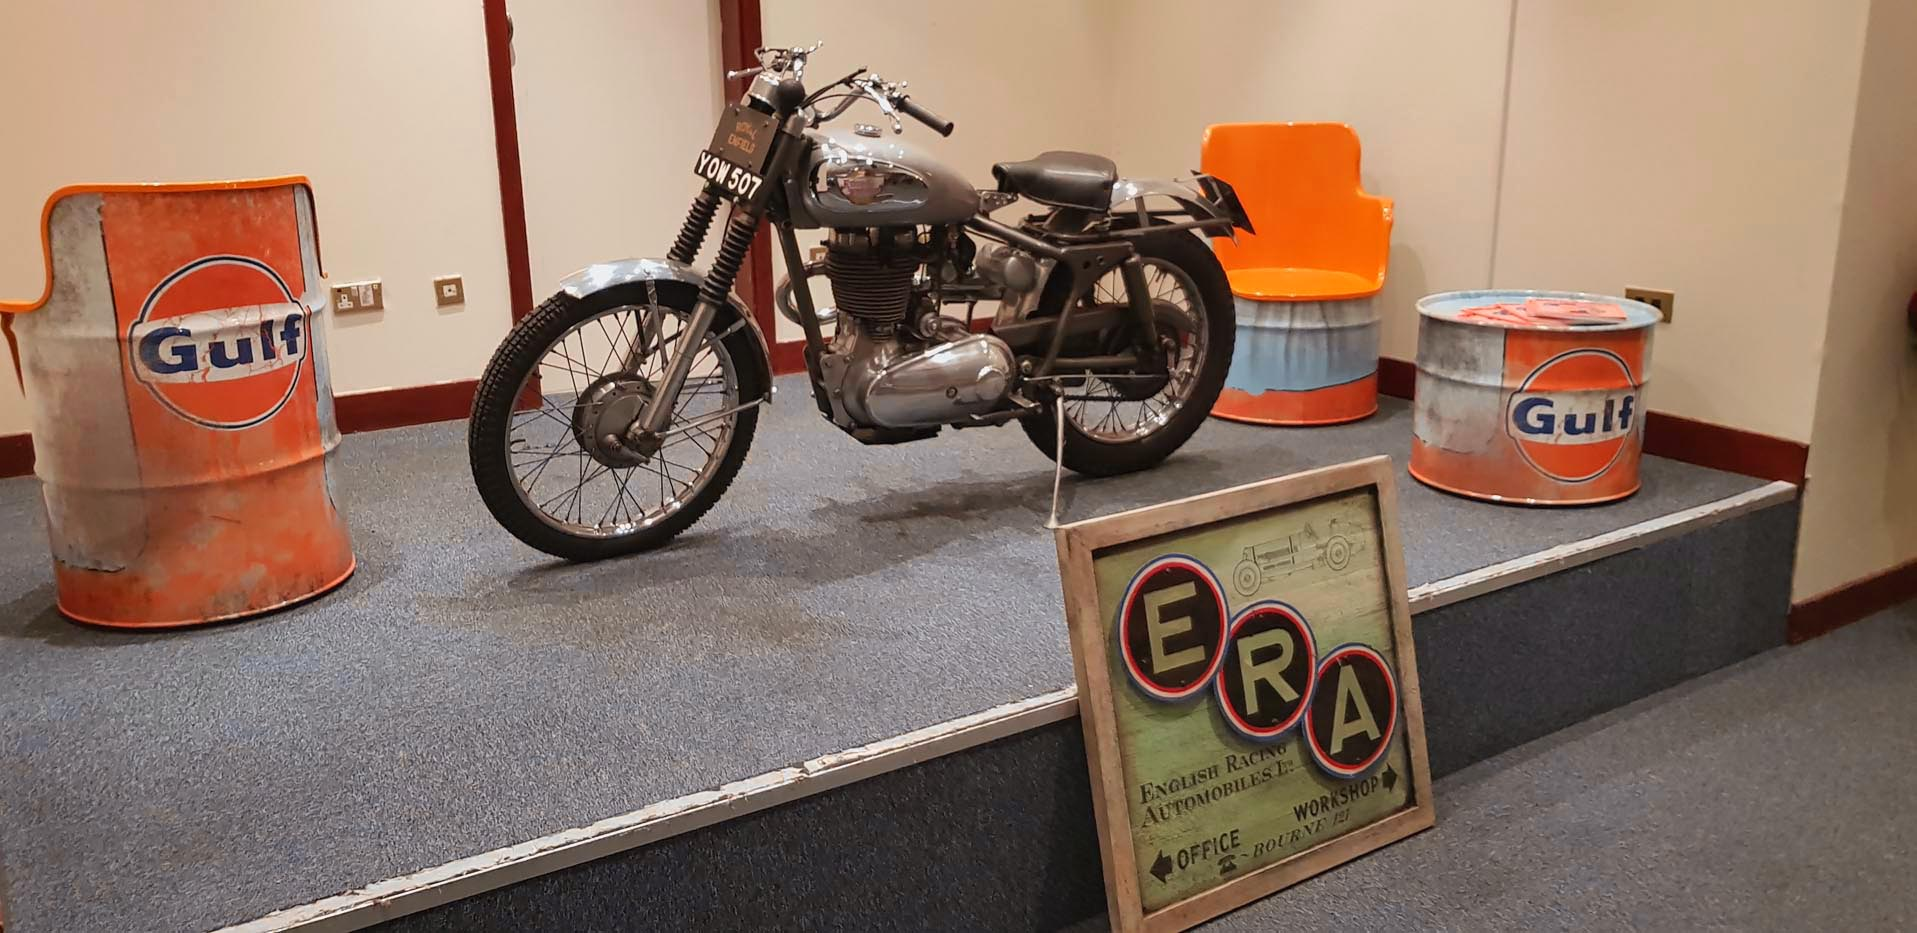 1959 Royal Enfield Motorcycle.jpg